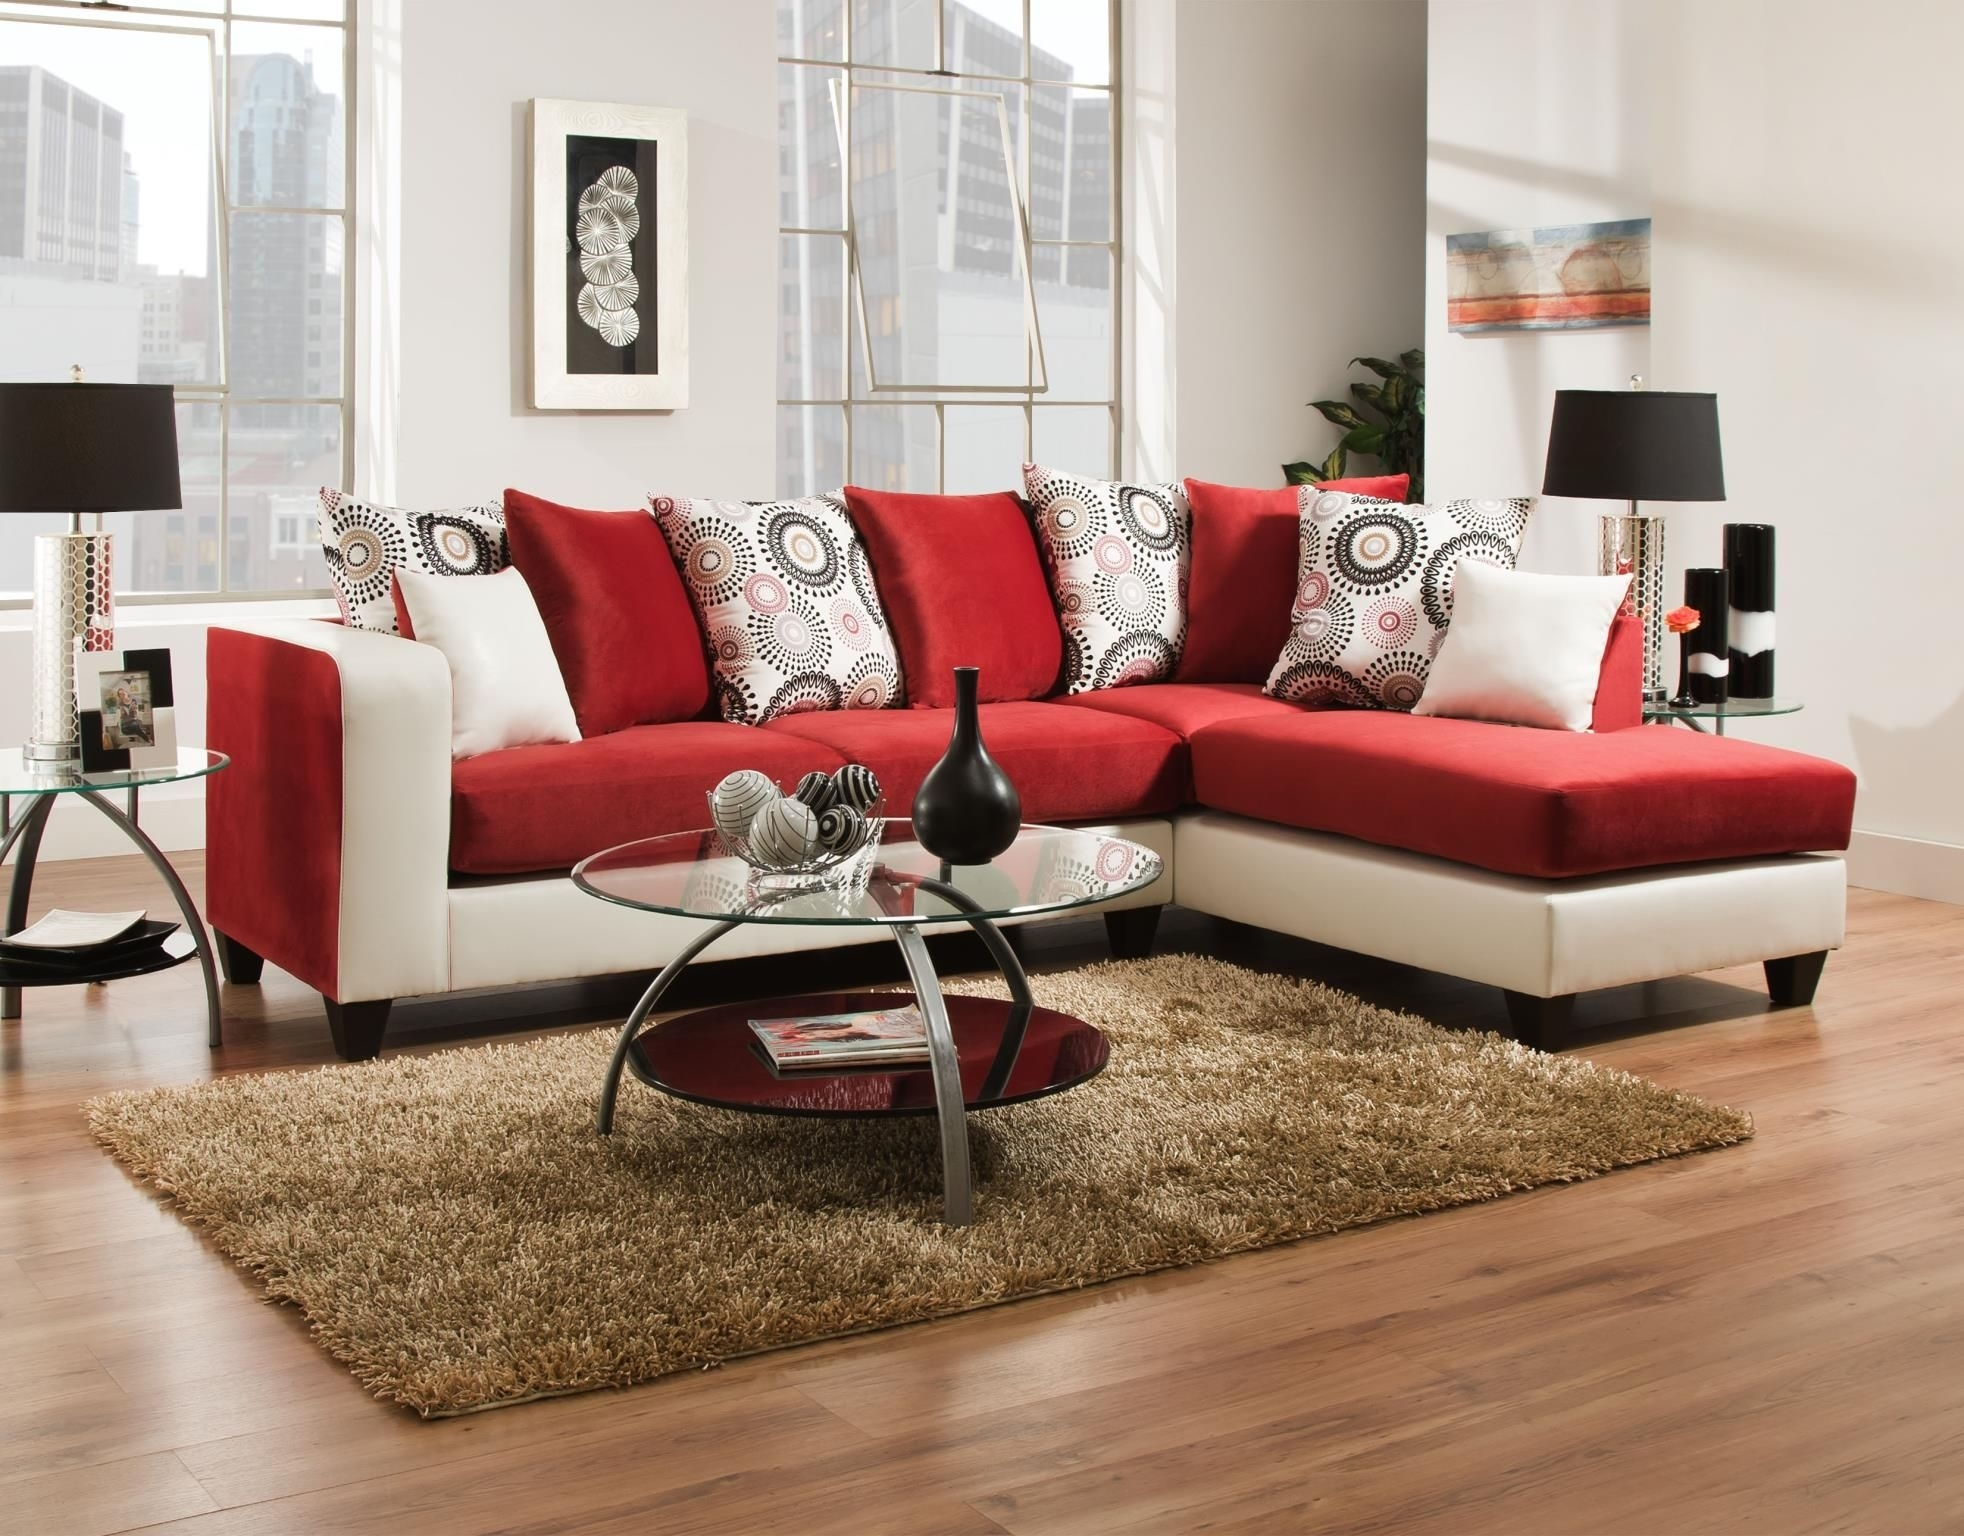 Delta Furniture 4124 03 Living Room Set | Living Room Furniture With Regard To Tampa Fl Sectional Sofas (View 1 of 10)